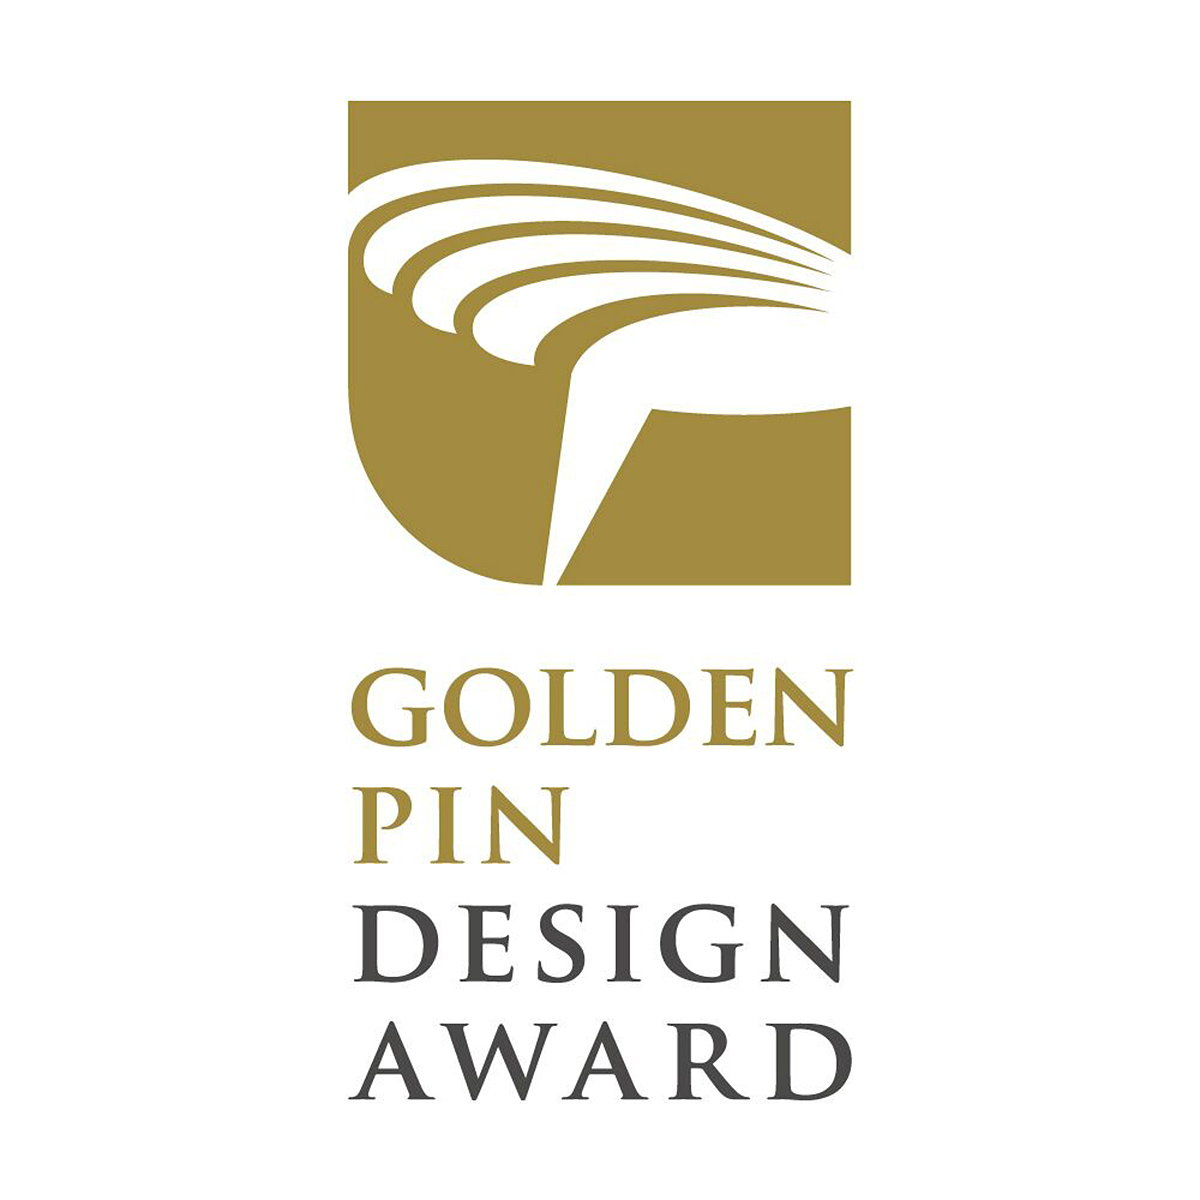 Golden Pin Design Award 2019